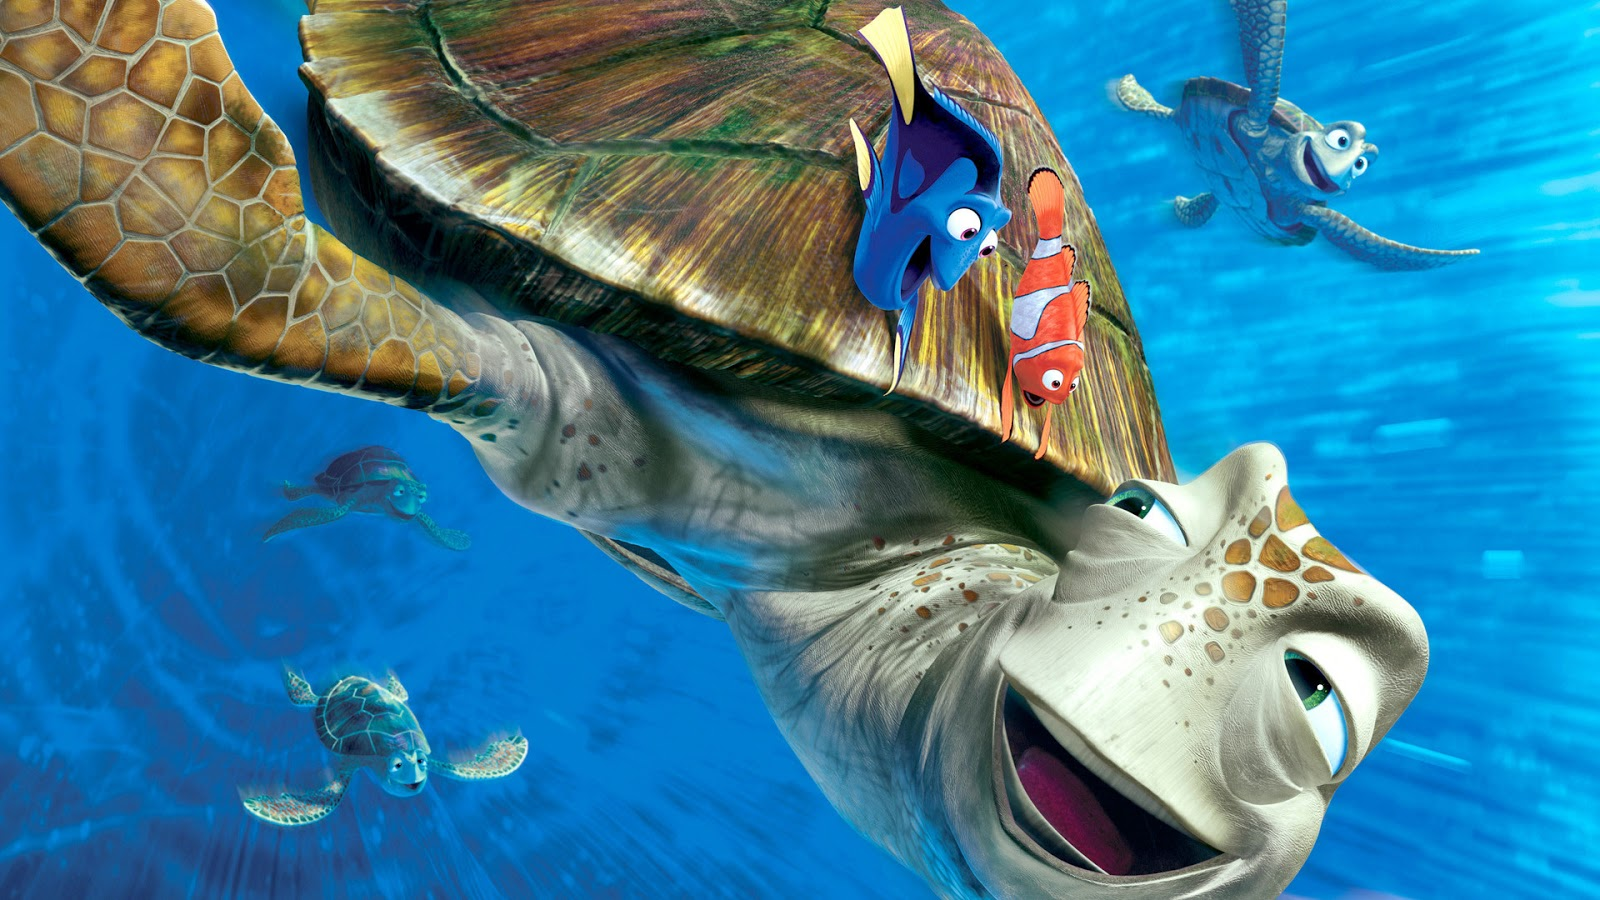 sea turtle in Finding Nemo 2003 animatedfilmreviews.filminspector.com